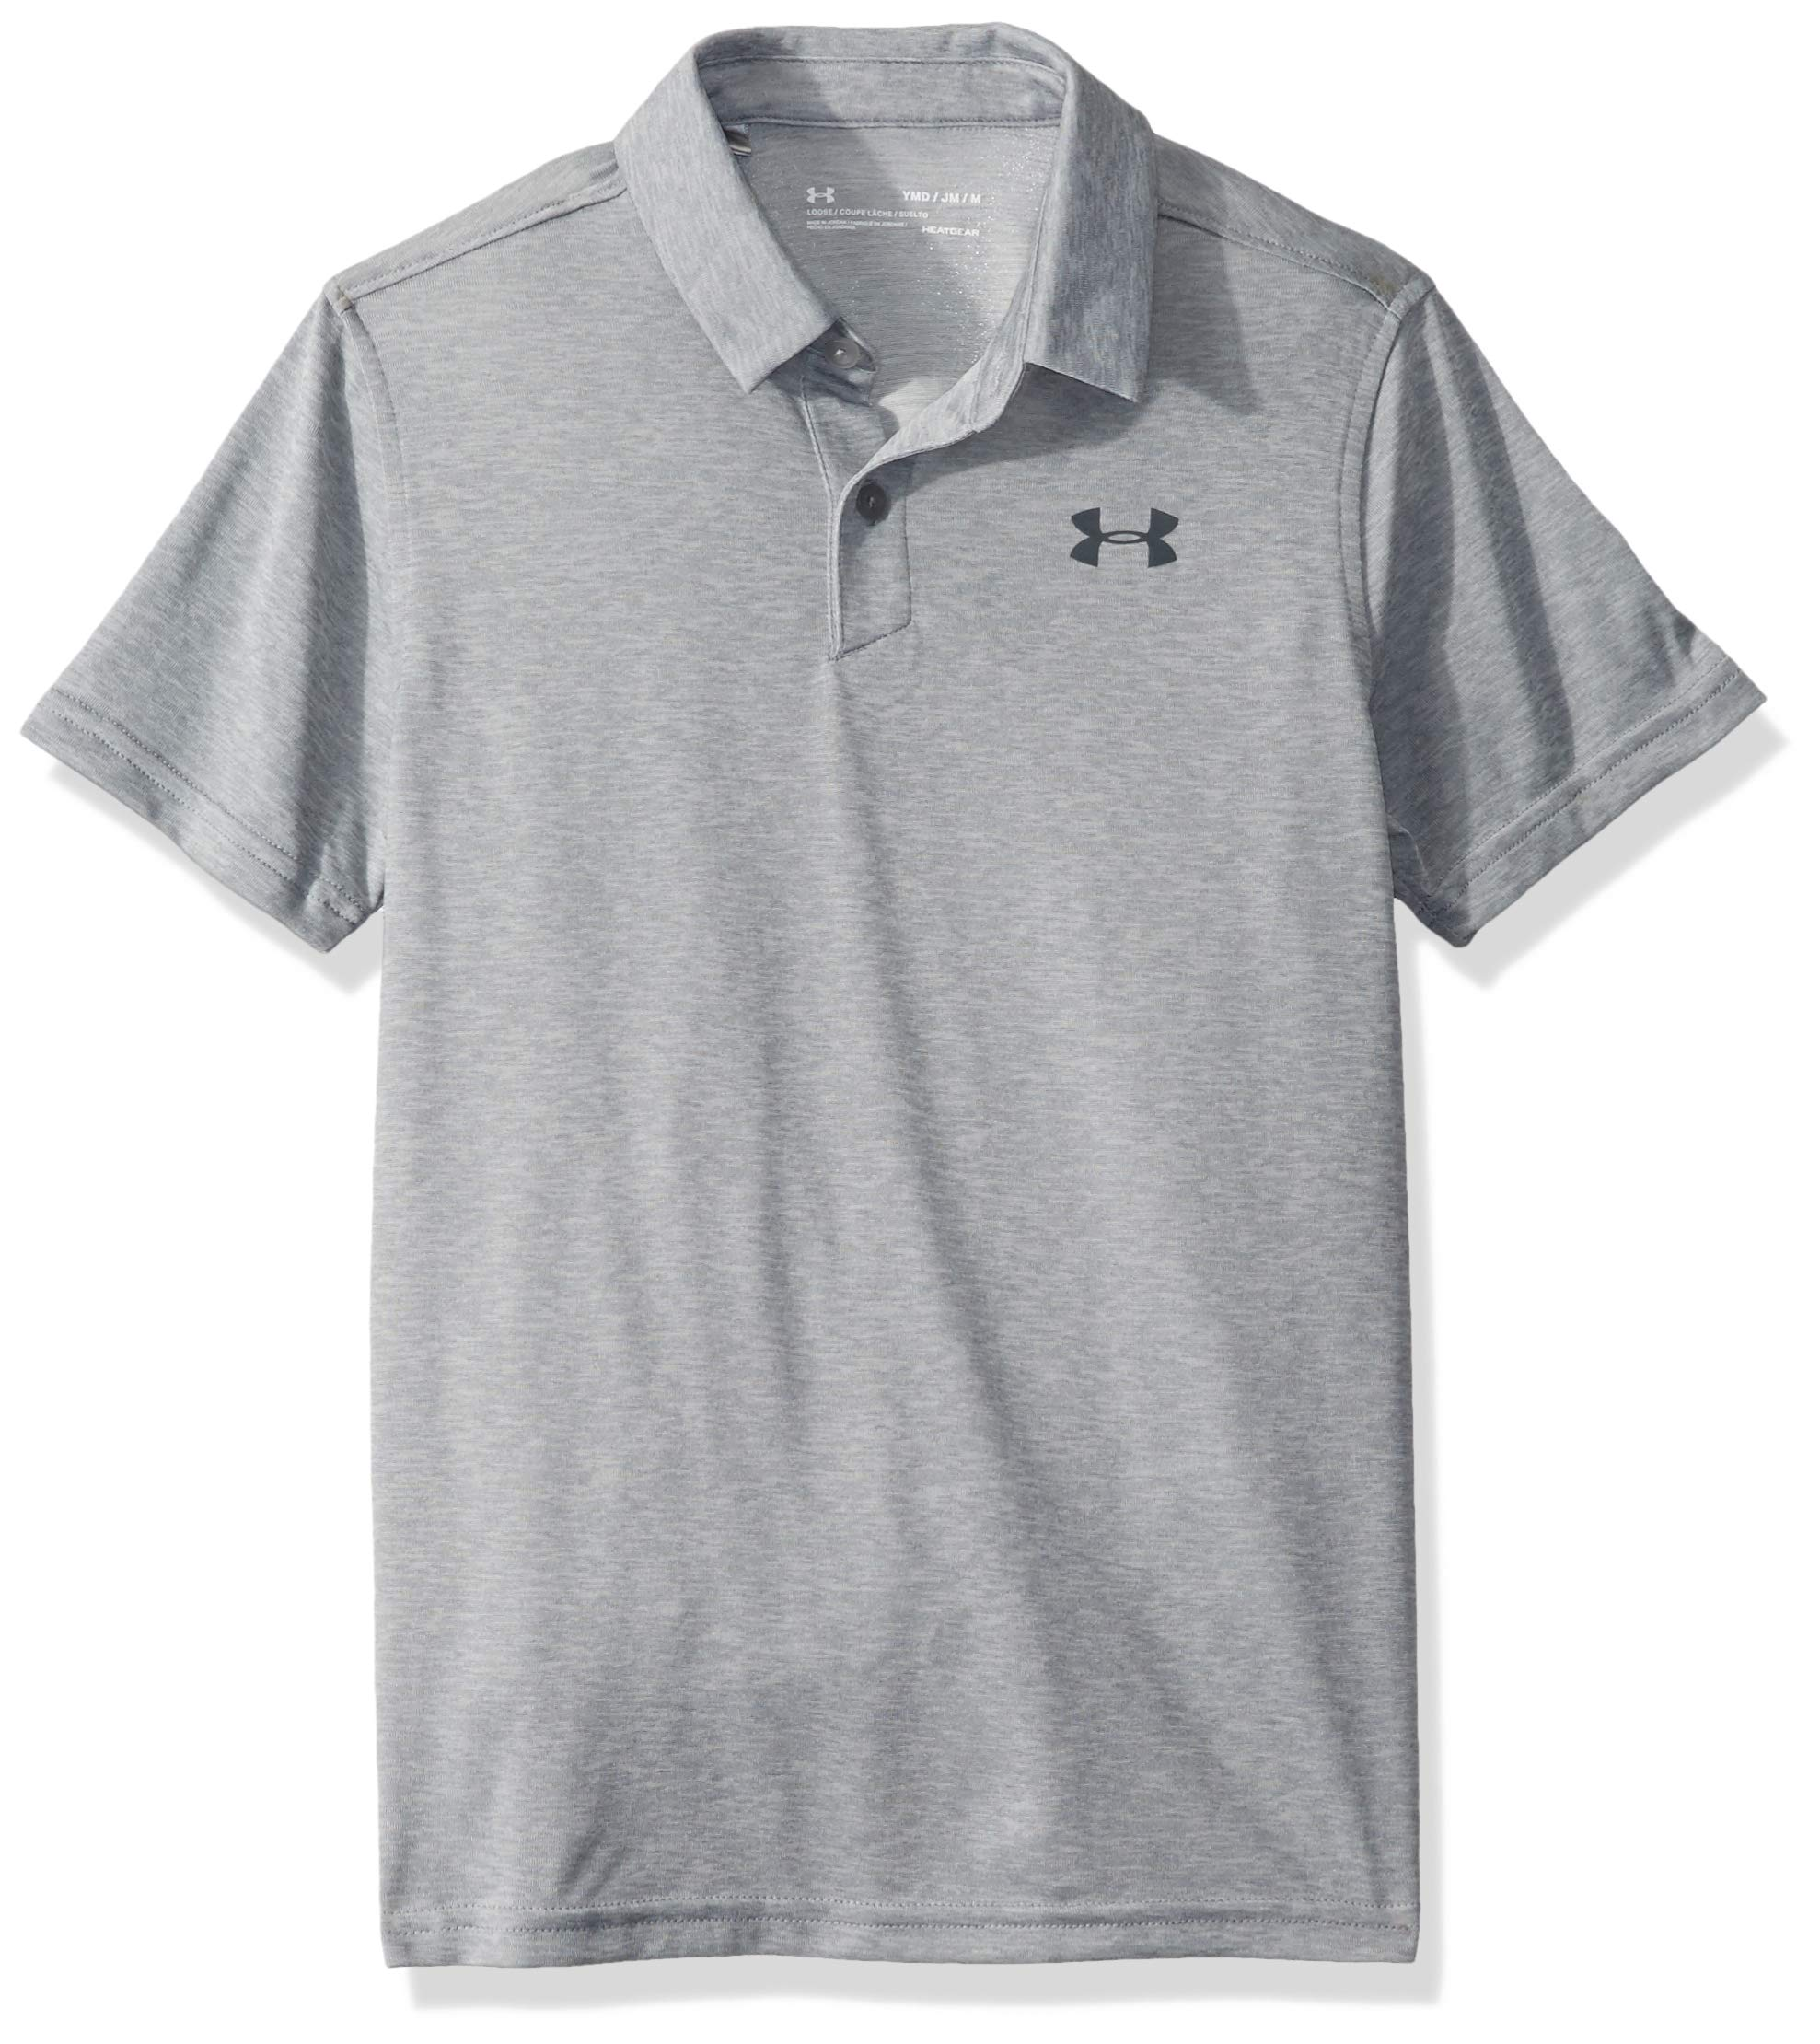 Under Armour Microthread Polo, Steel Light Heather (035)/Pitch Gray, Youth Large by Under Armour